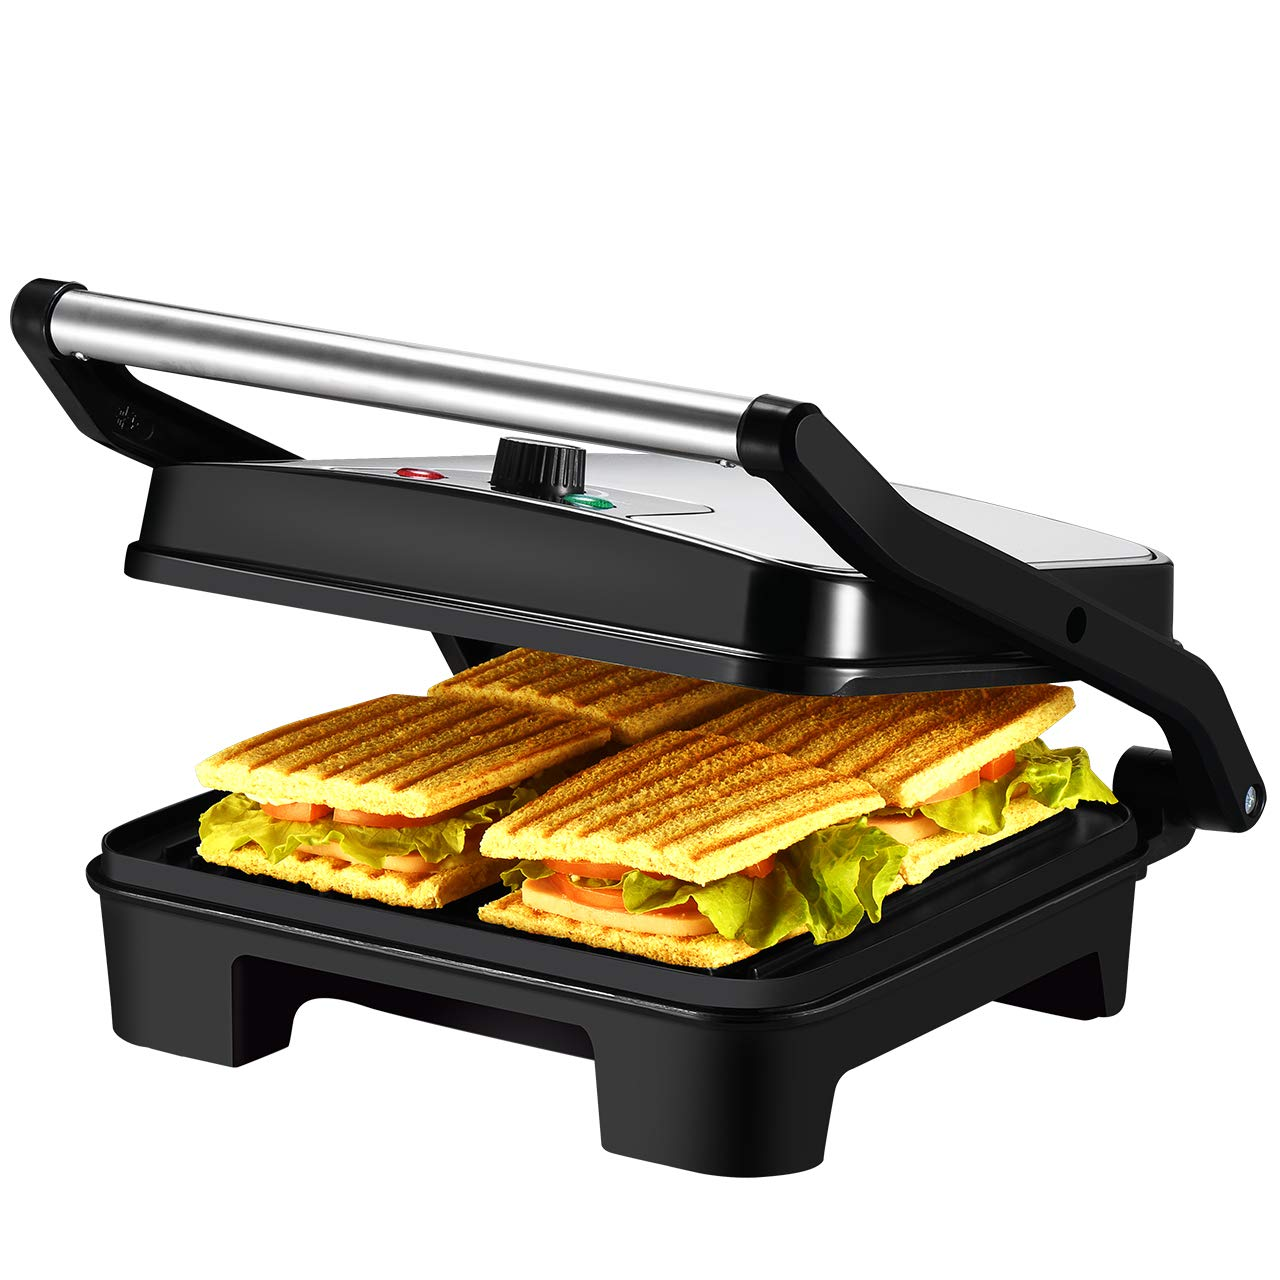 IKICH Temperature Control Panini Press, 4 Slice Sandwich Maker, Nonstick Panini Maker Grill with 3 Year Warranty, Extra Large Plate and Removable Drip Tray for Grilled Cheese, Chicken Breasts by IKICH